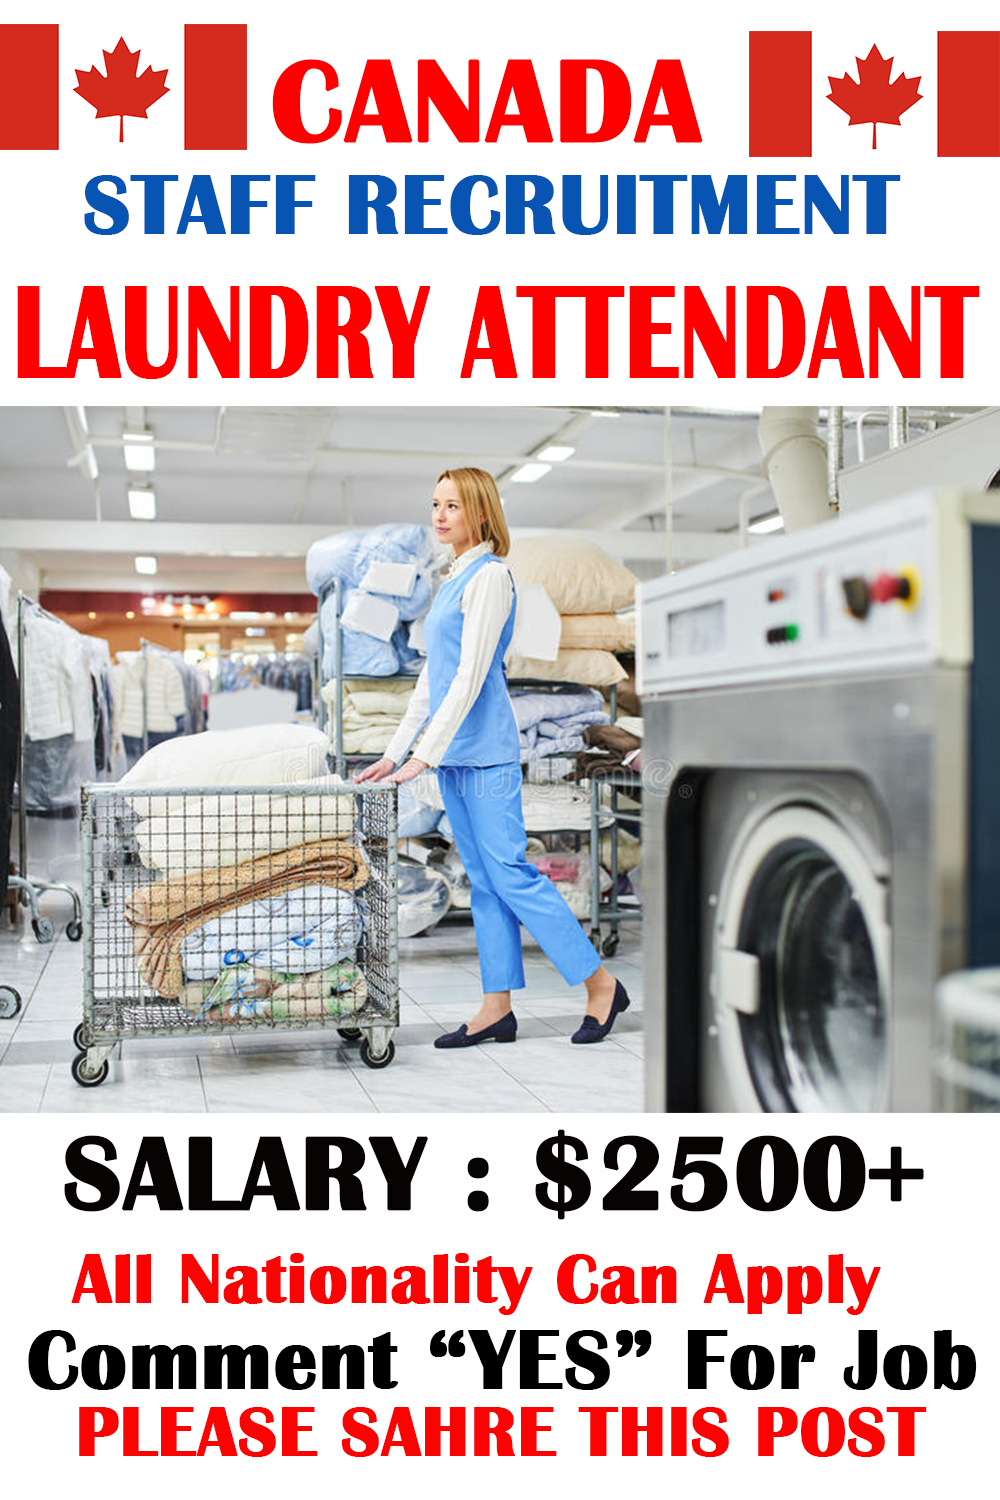 Laundry Attendant Wanted In Canada Work Opportunities Staff